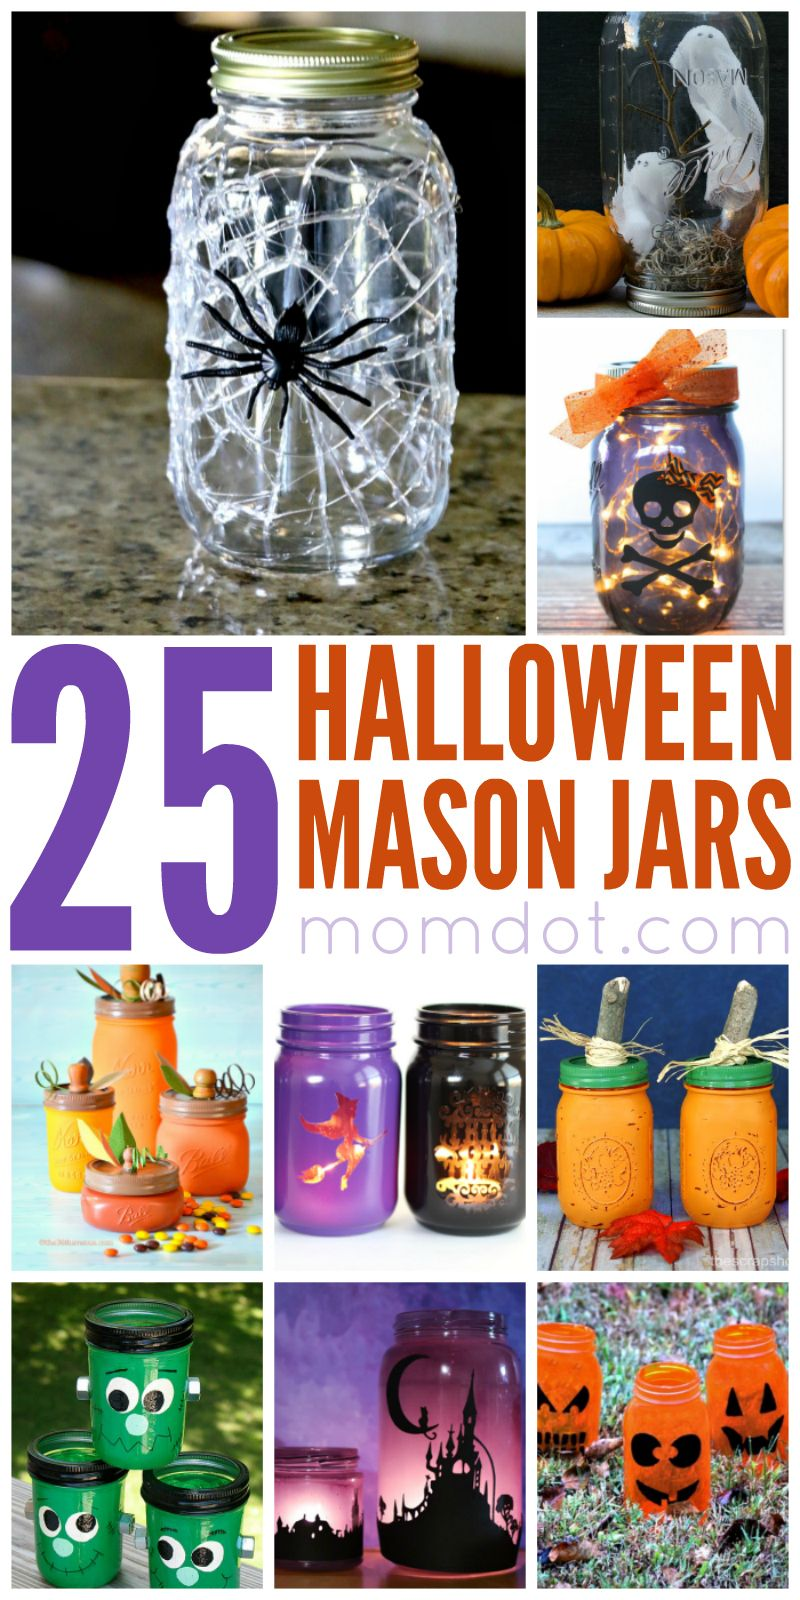 25 Halloween Mason Jars Ideas Halloween Mason Jar Crafting And Tons Of Spooky Awesome Ide Mason Jar Halloween Crafts Mason Jar Crafts Diy Halloween Mason Jars